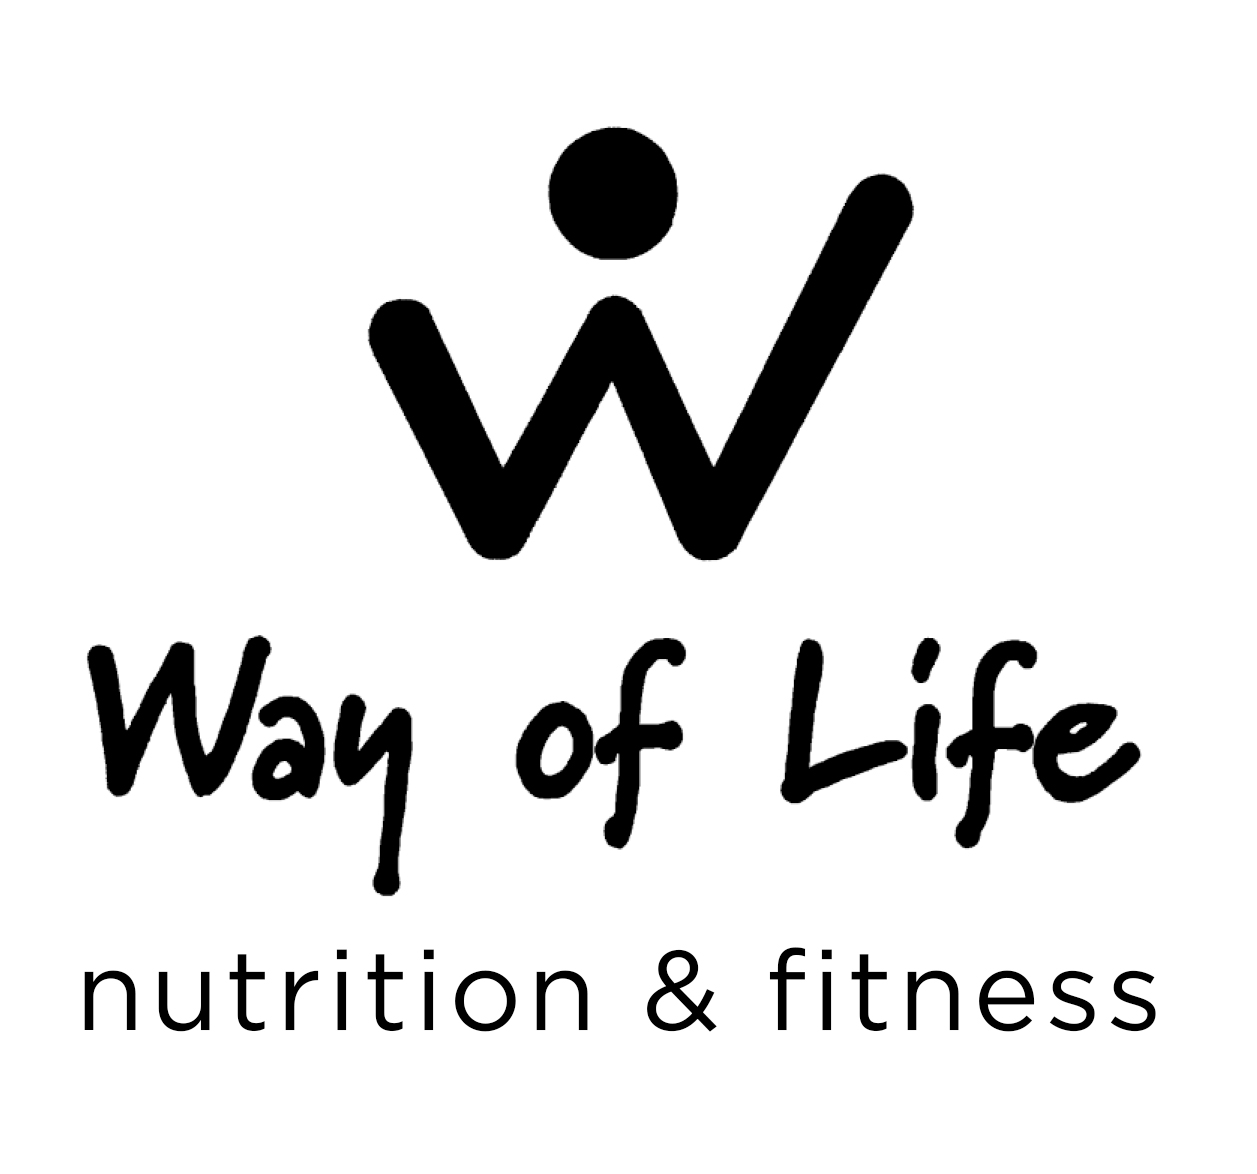 Nutrition and Fitness for YOUR Way of Life